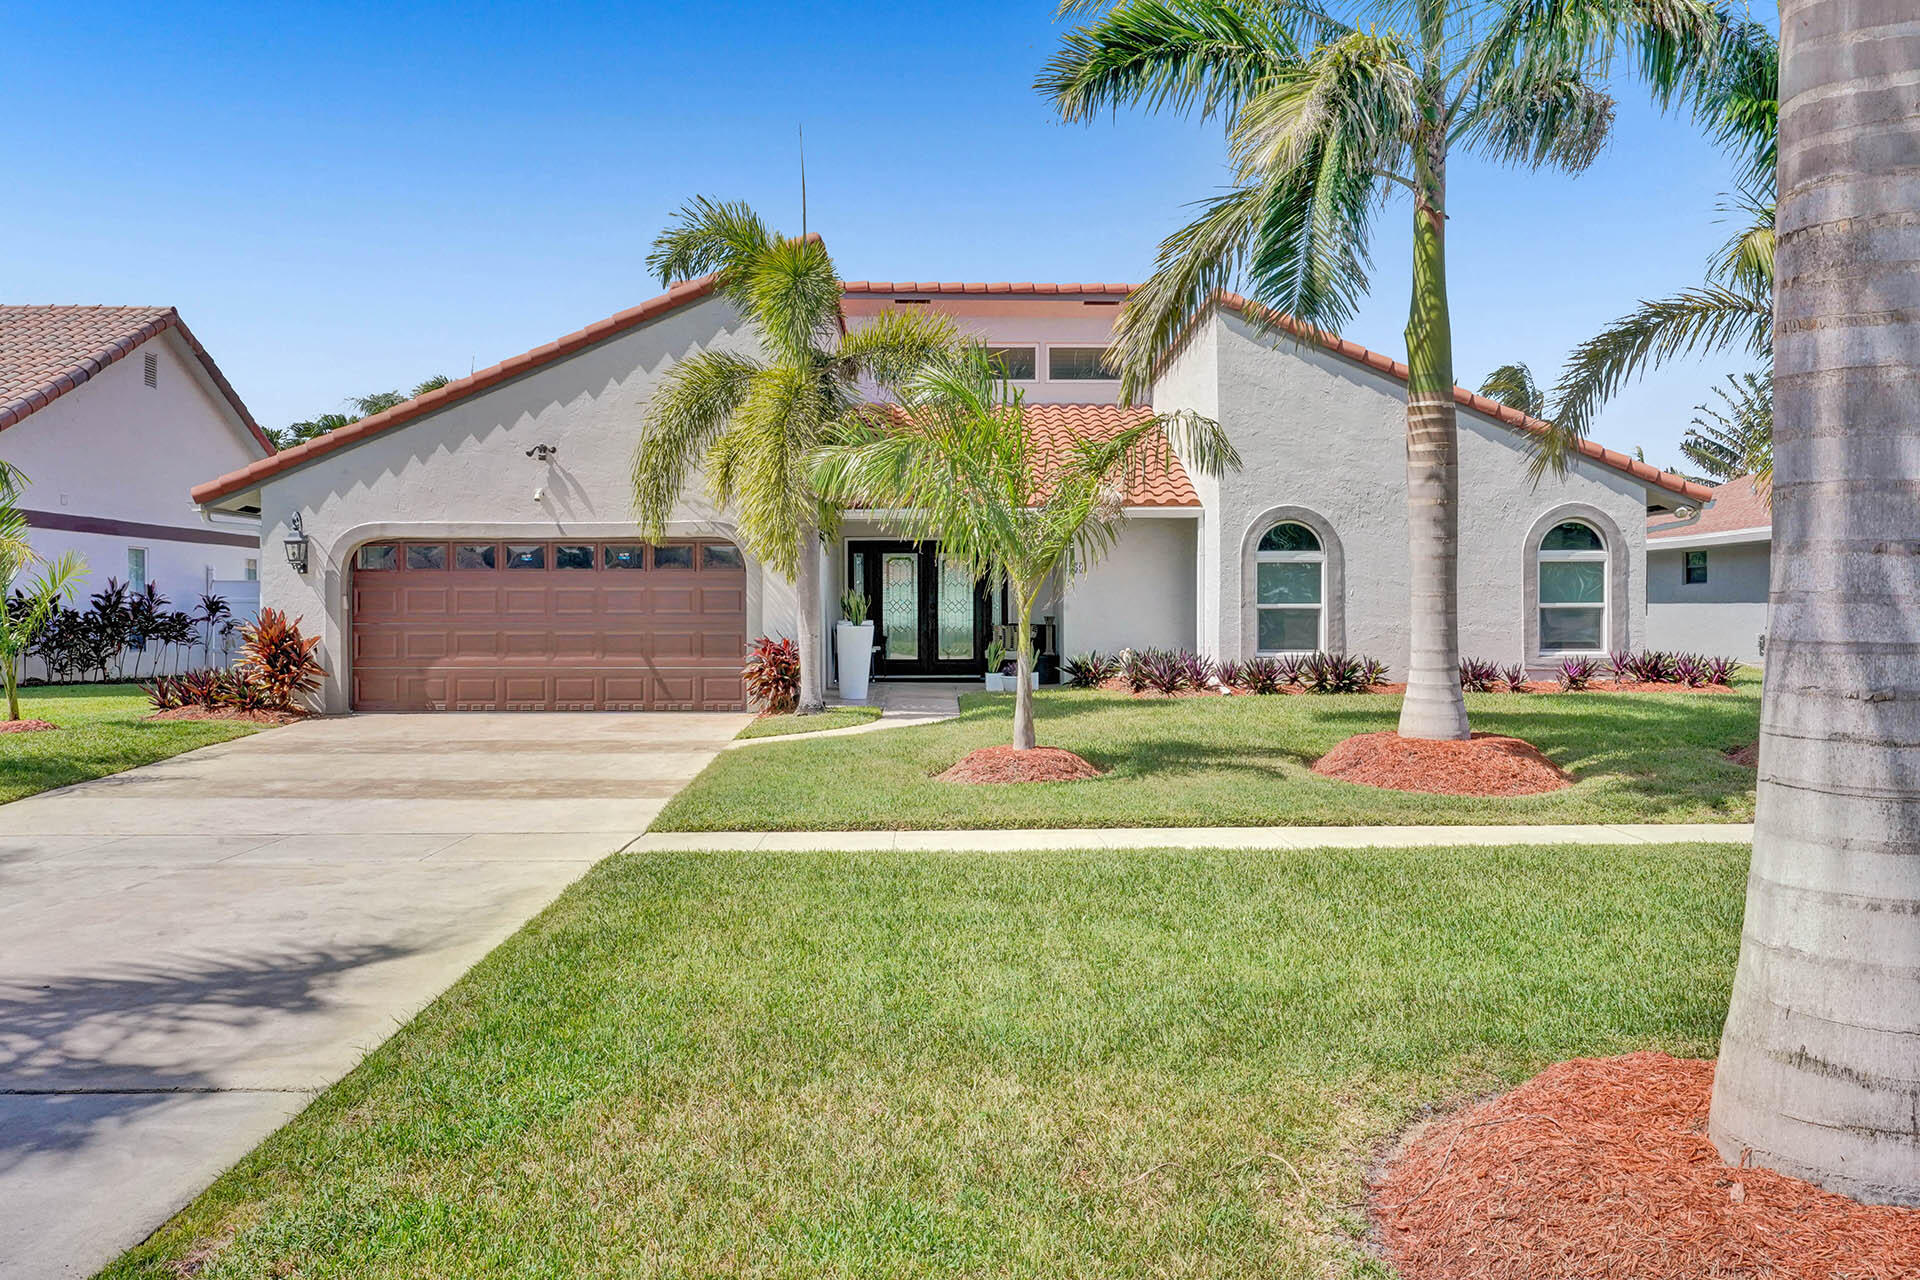 359 S Country Club Boulevard  For Sale 10741988, FL